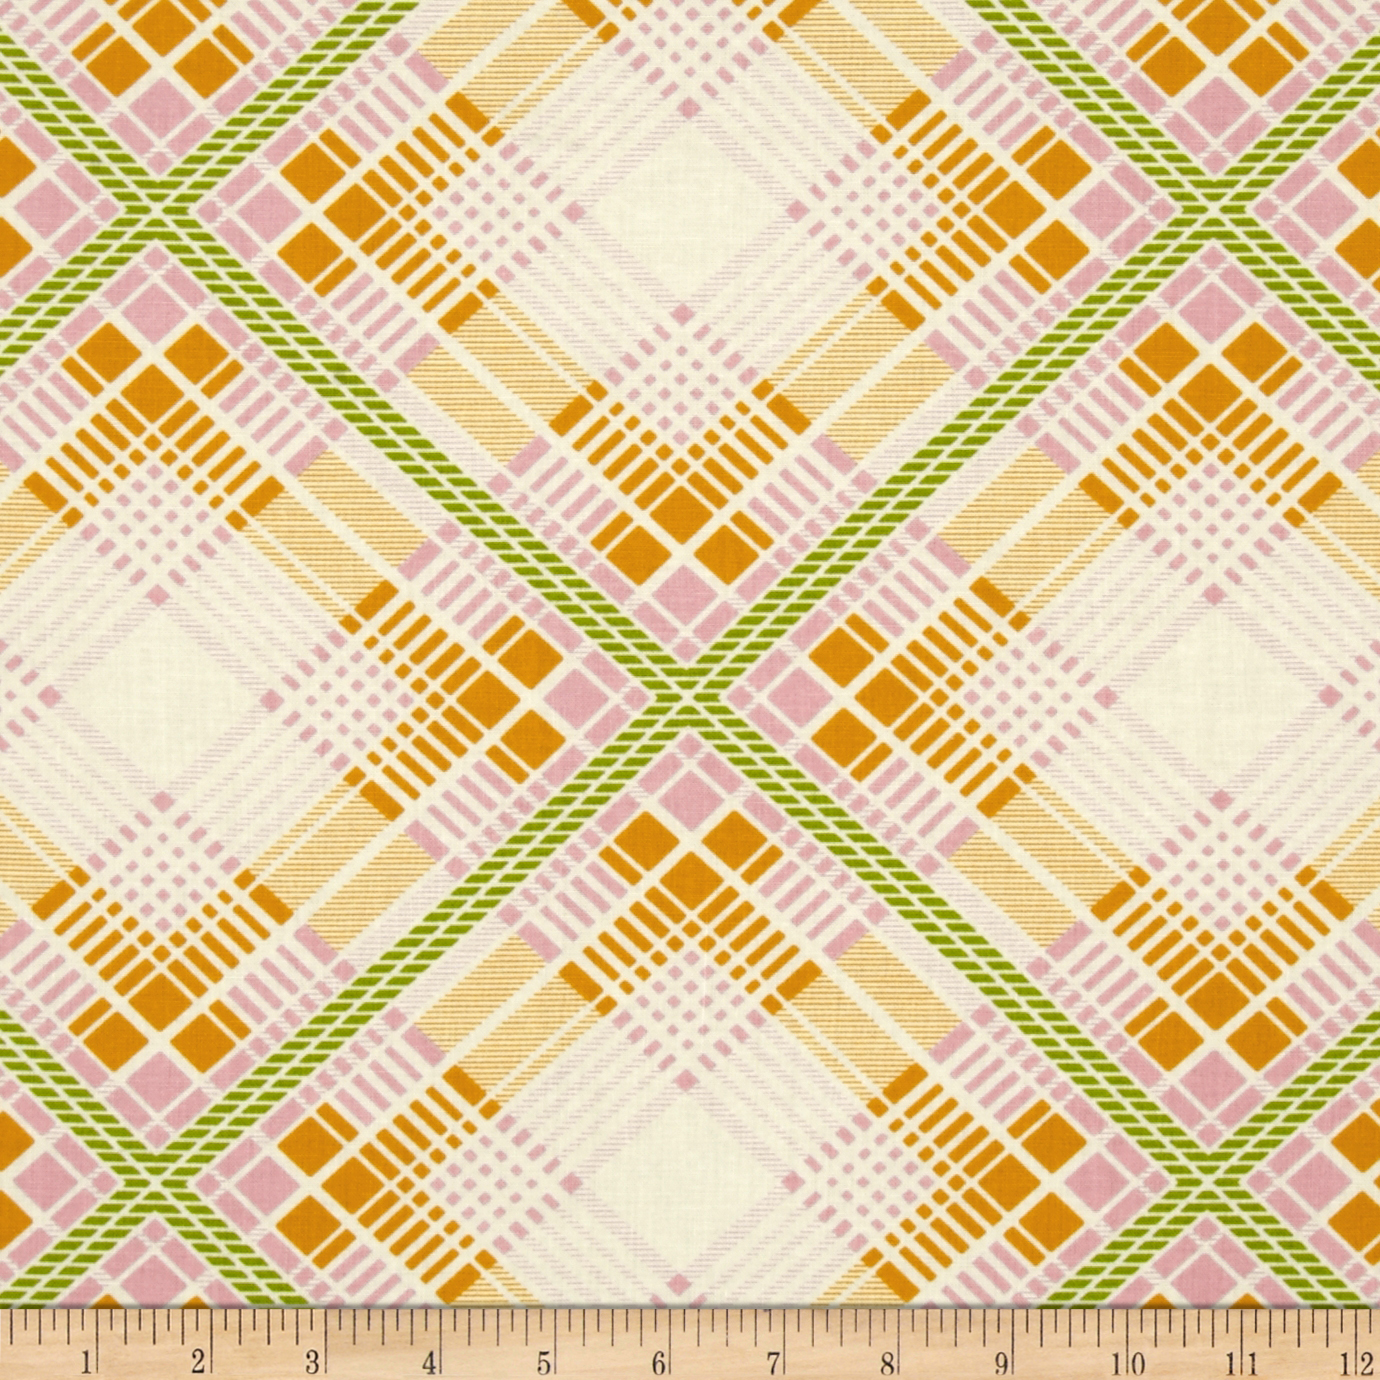 Heather Bailey Up Parasol Summer Plaid Tangerine Fabric